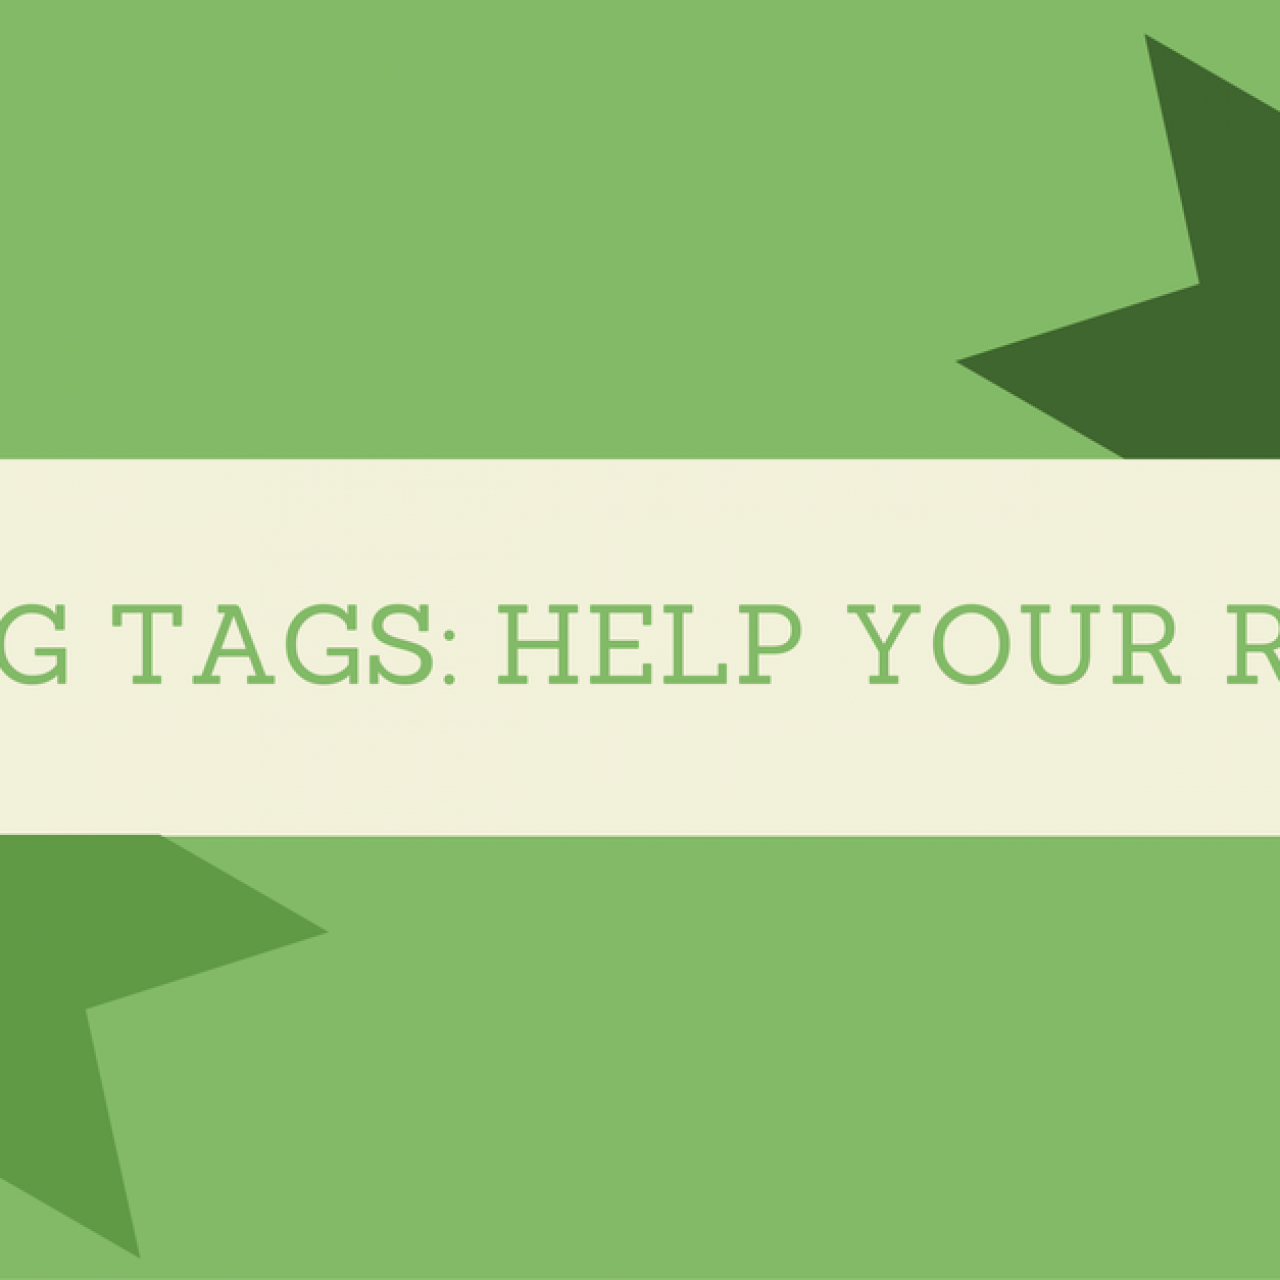 Use Heading Tags to Help Your Readers